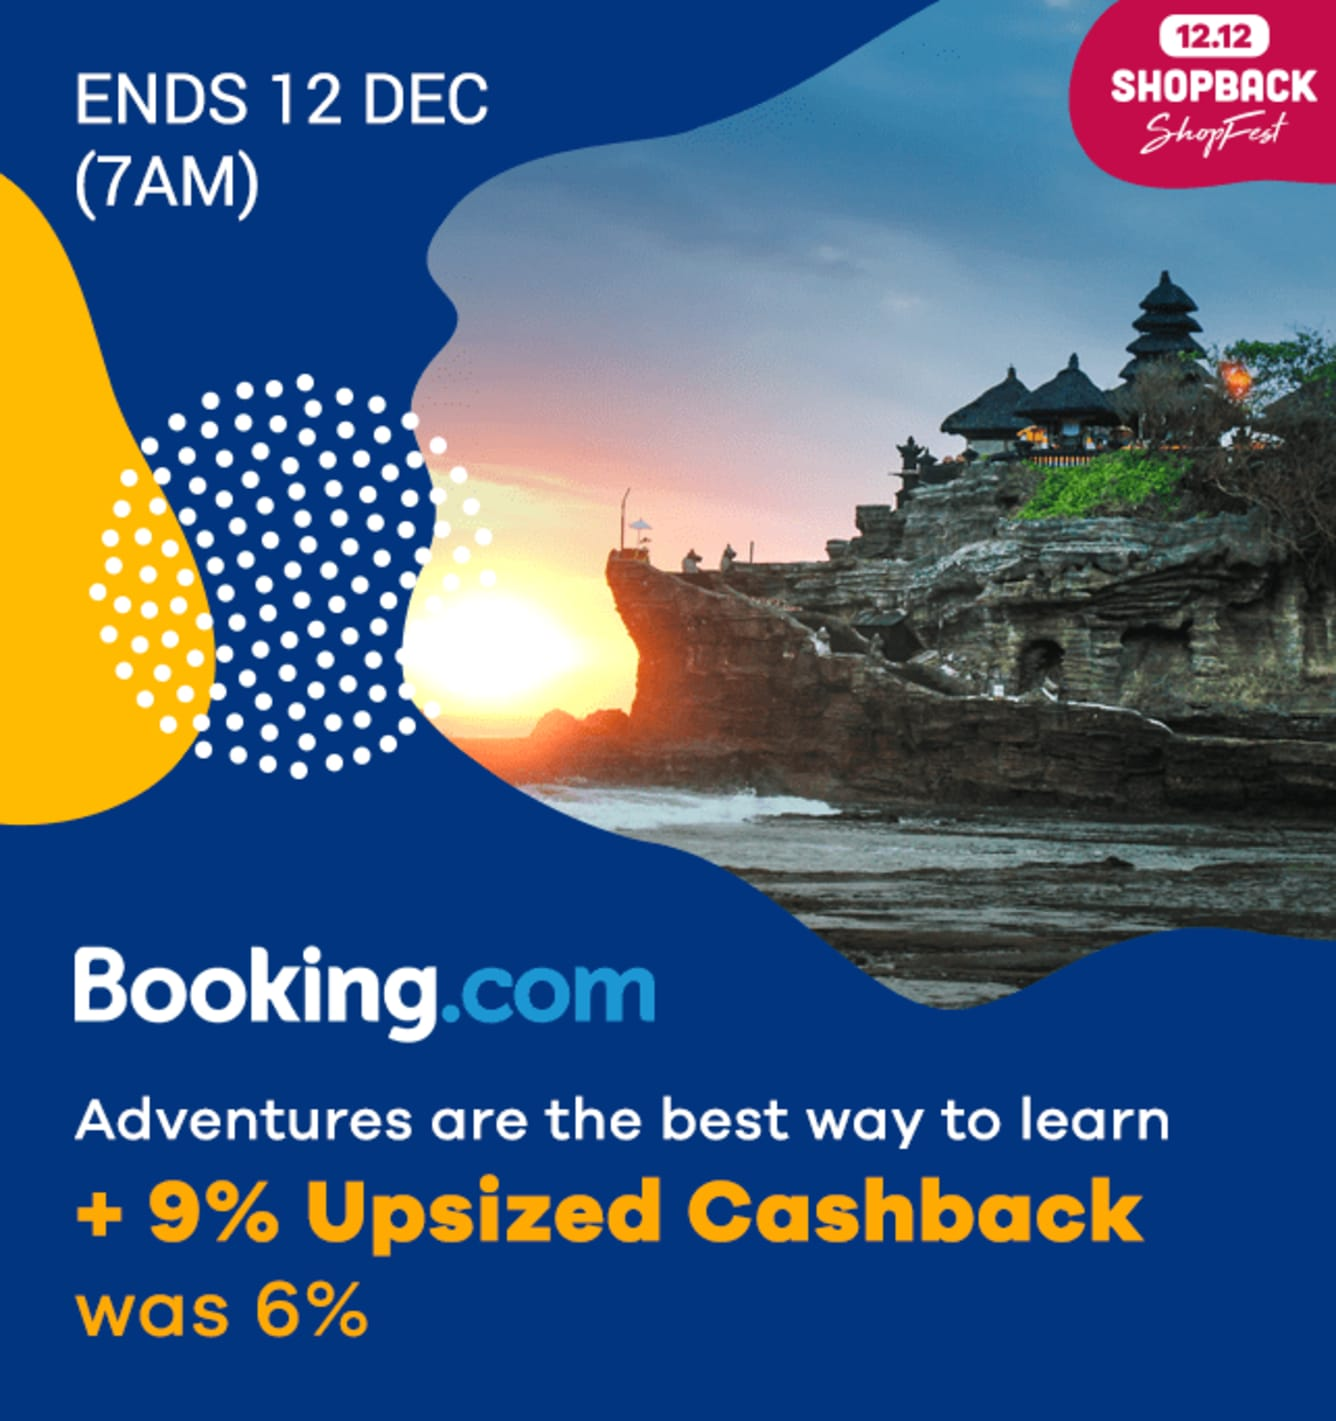 Booking.com Up to 9% Upsized Cashback